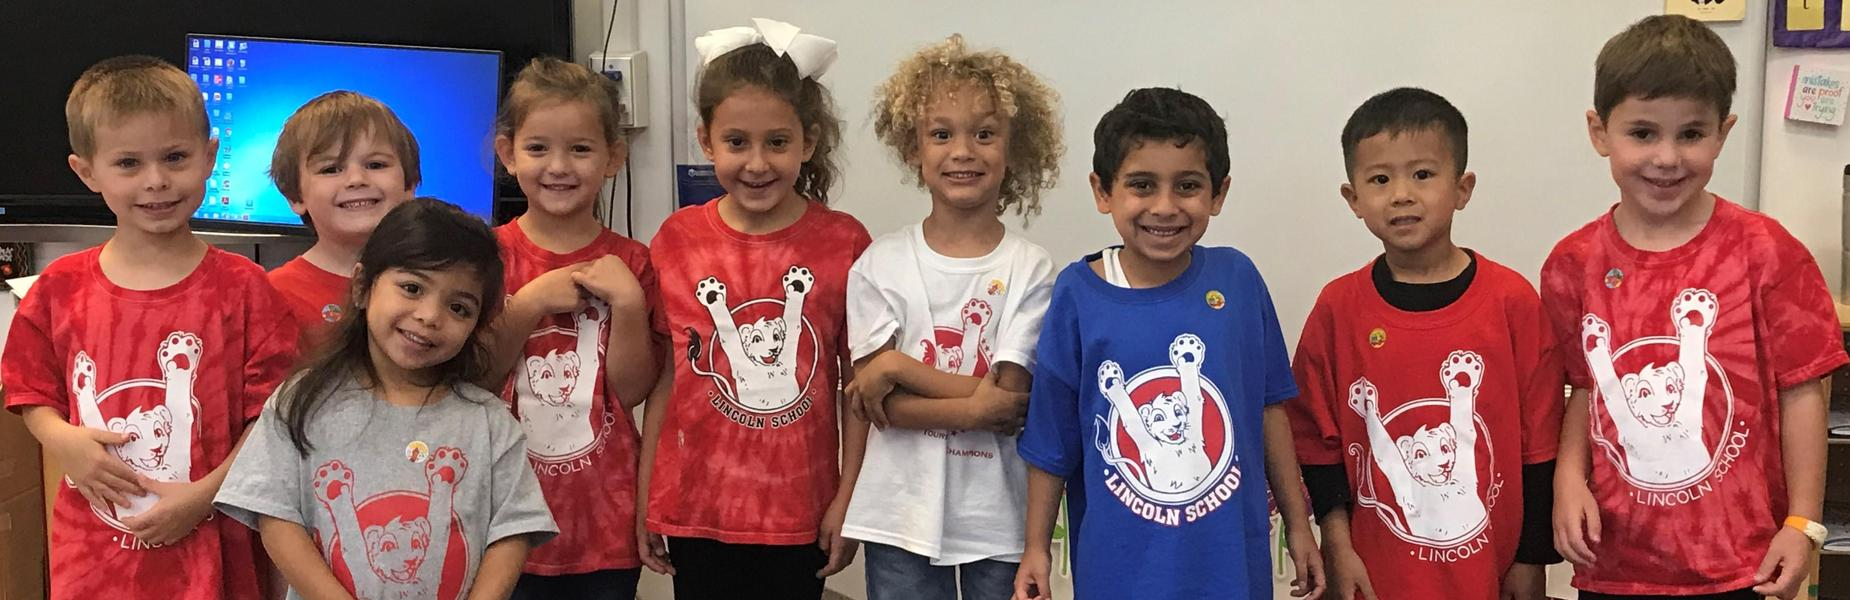 Photo of kindergartners wearing spirit wear shirts on Spirit Day.